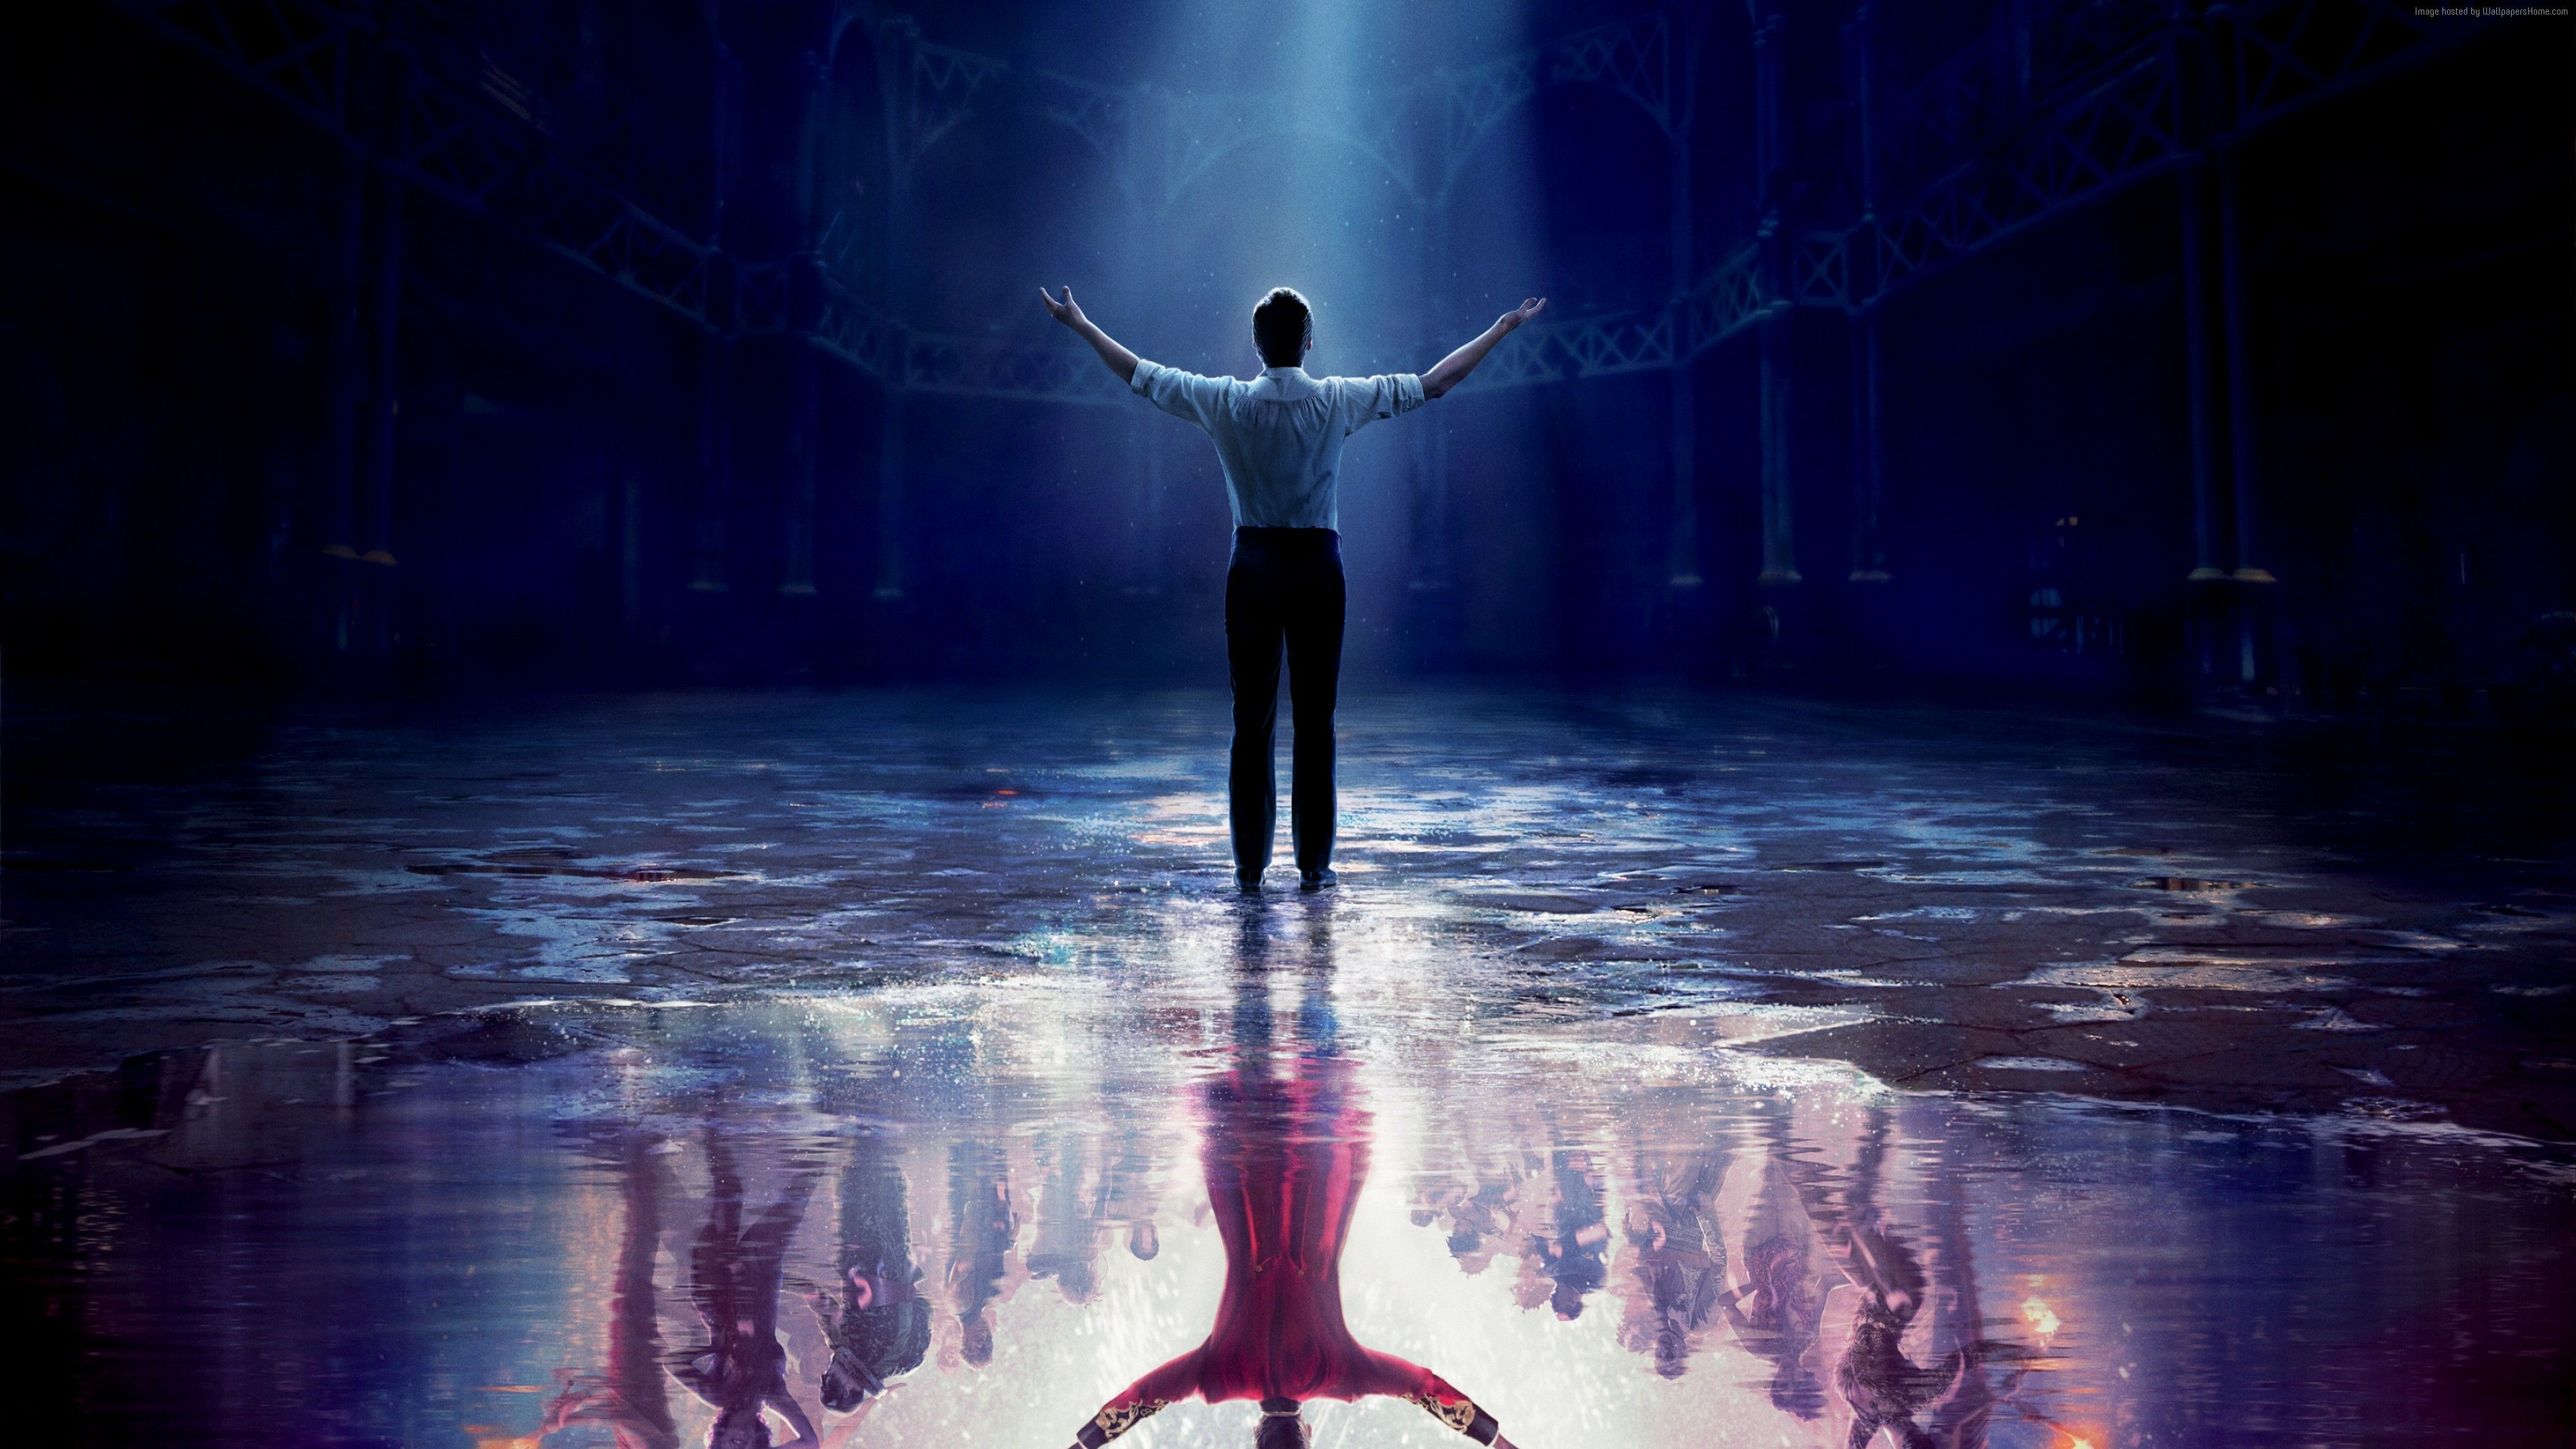 Wallpaper The Greatest Showman, Hugh Jackman, 4k, Movies #16096